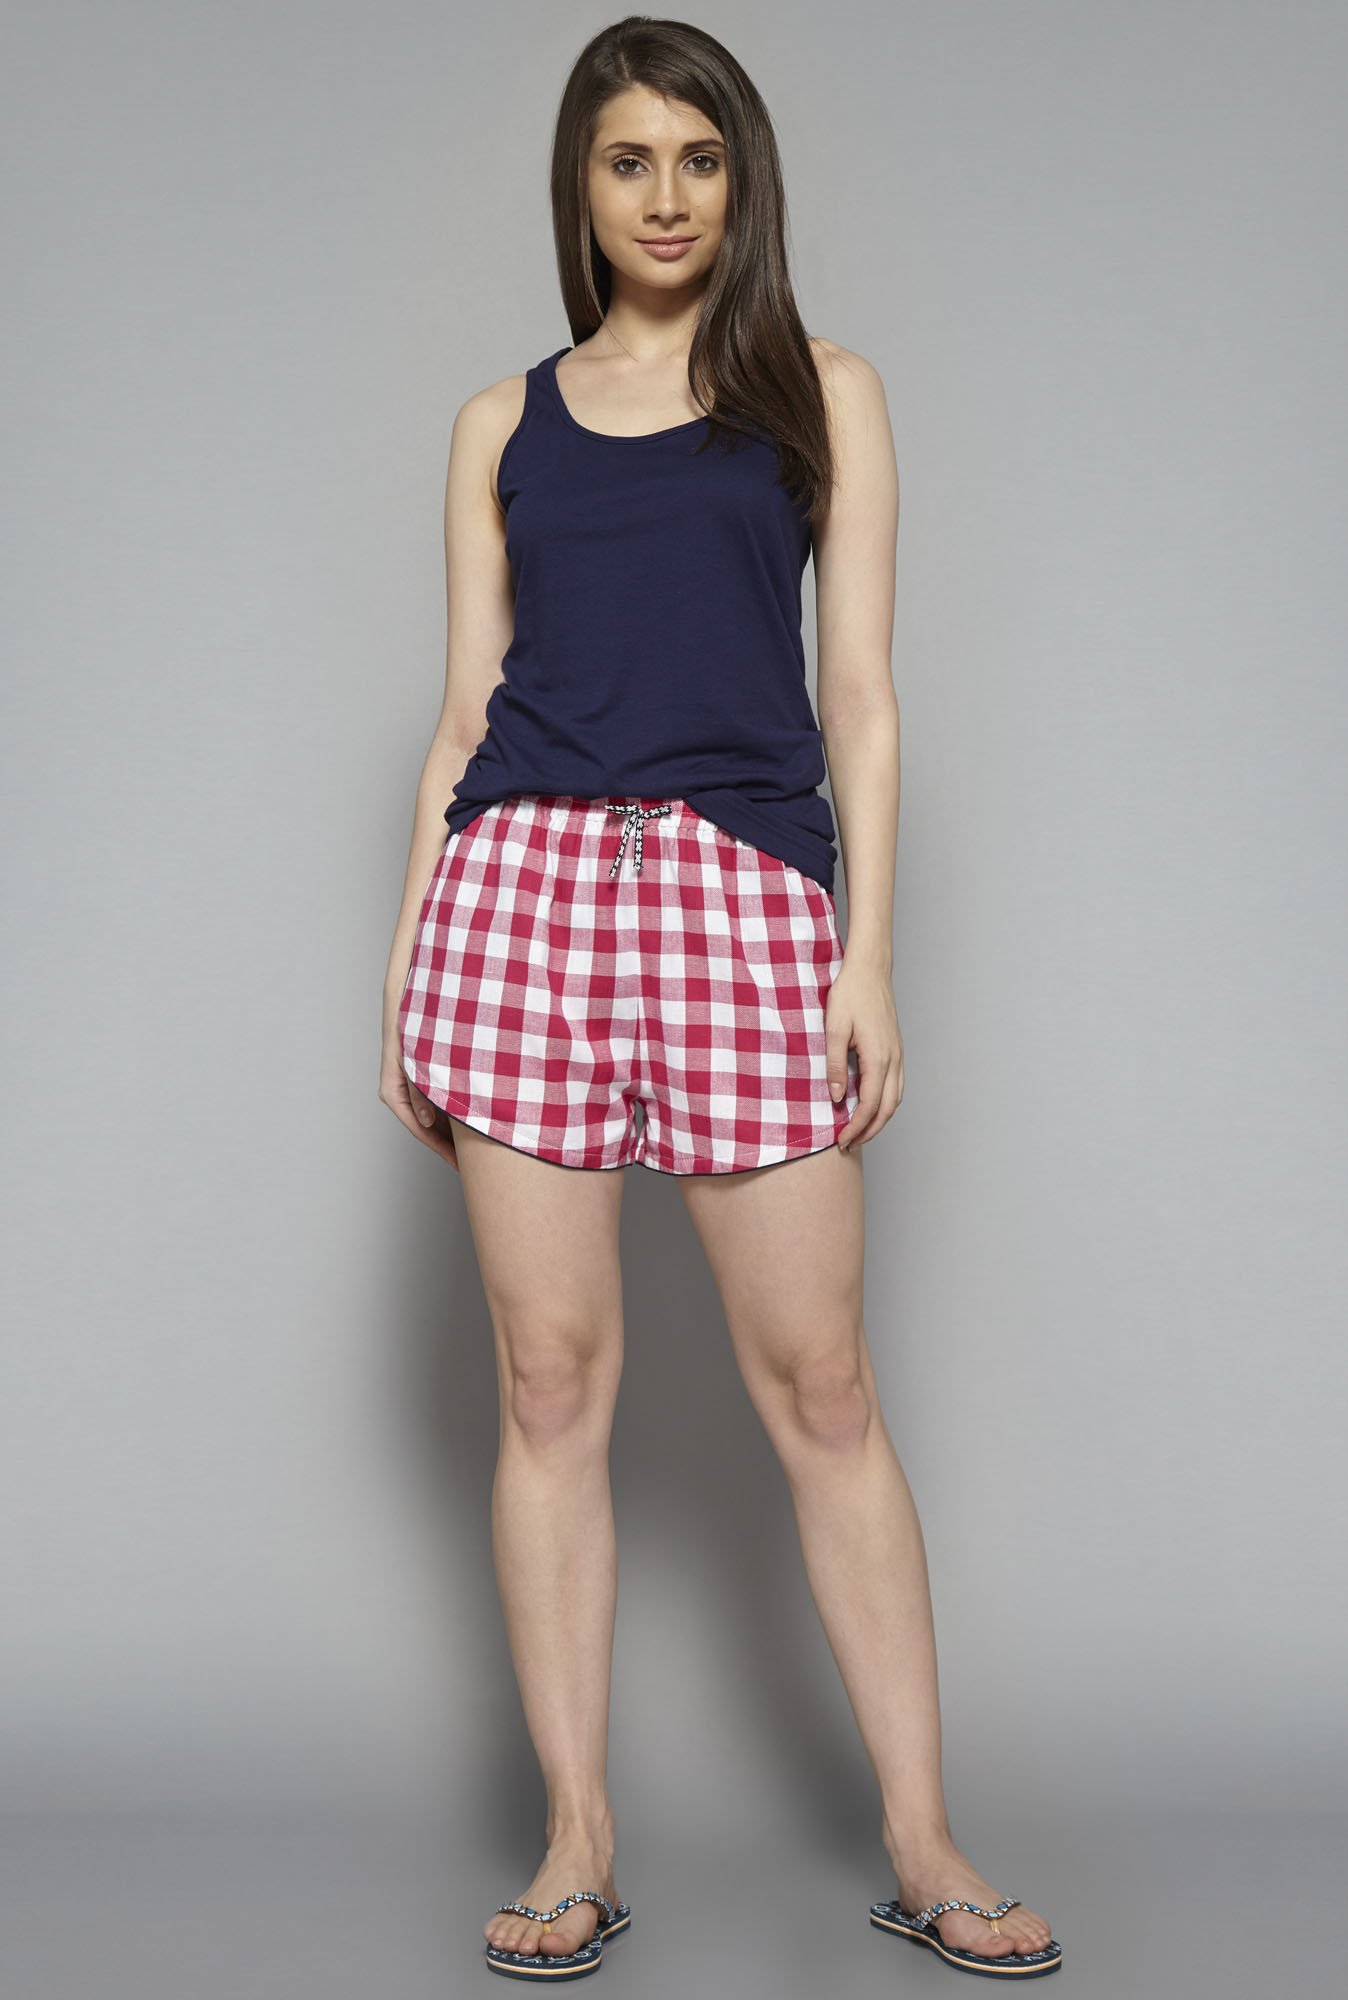 Intima by Westside Pink Checks Shorts